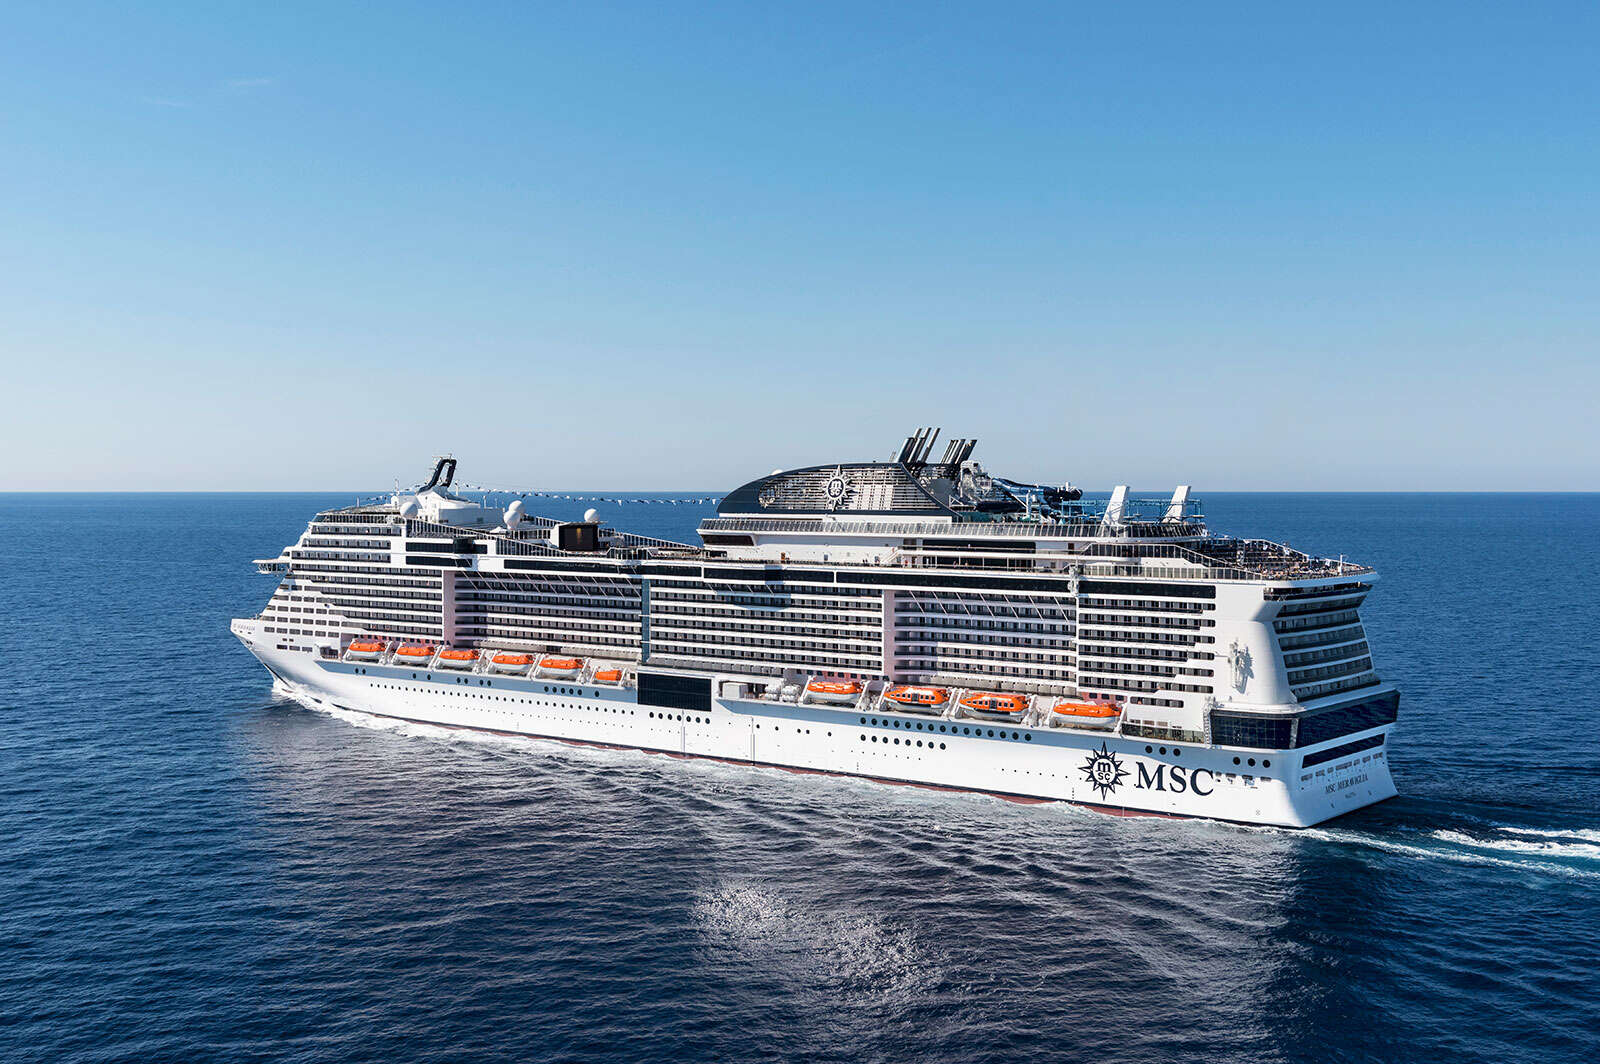 GO ALL IN!  MSC Cruises offers Free Drinks and WiFi